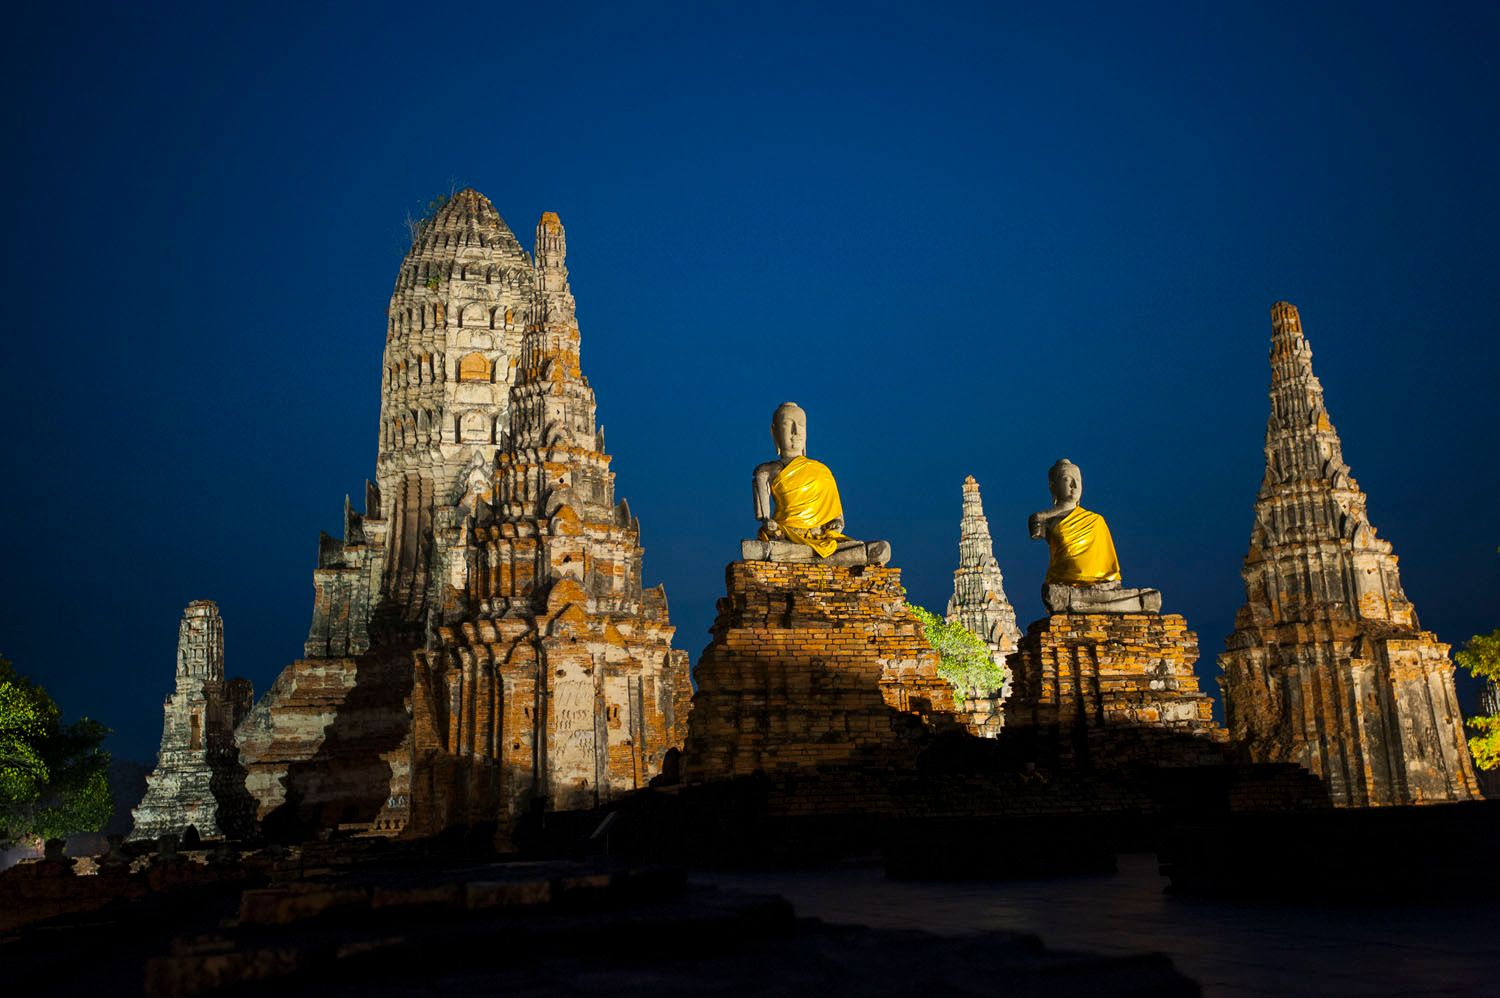 Buddha statues sitting amongst ancient ruins at dusk in Ayutthay